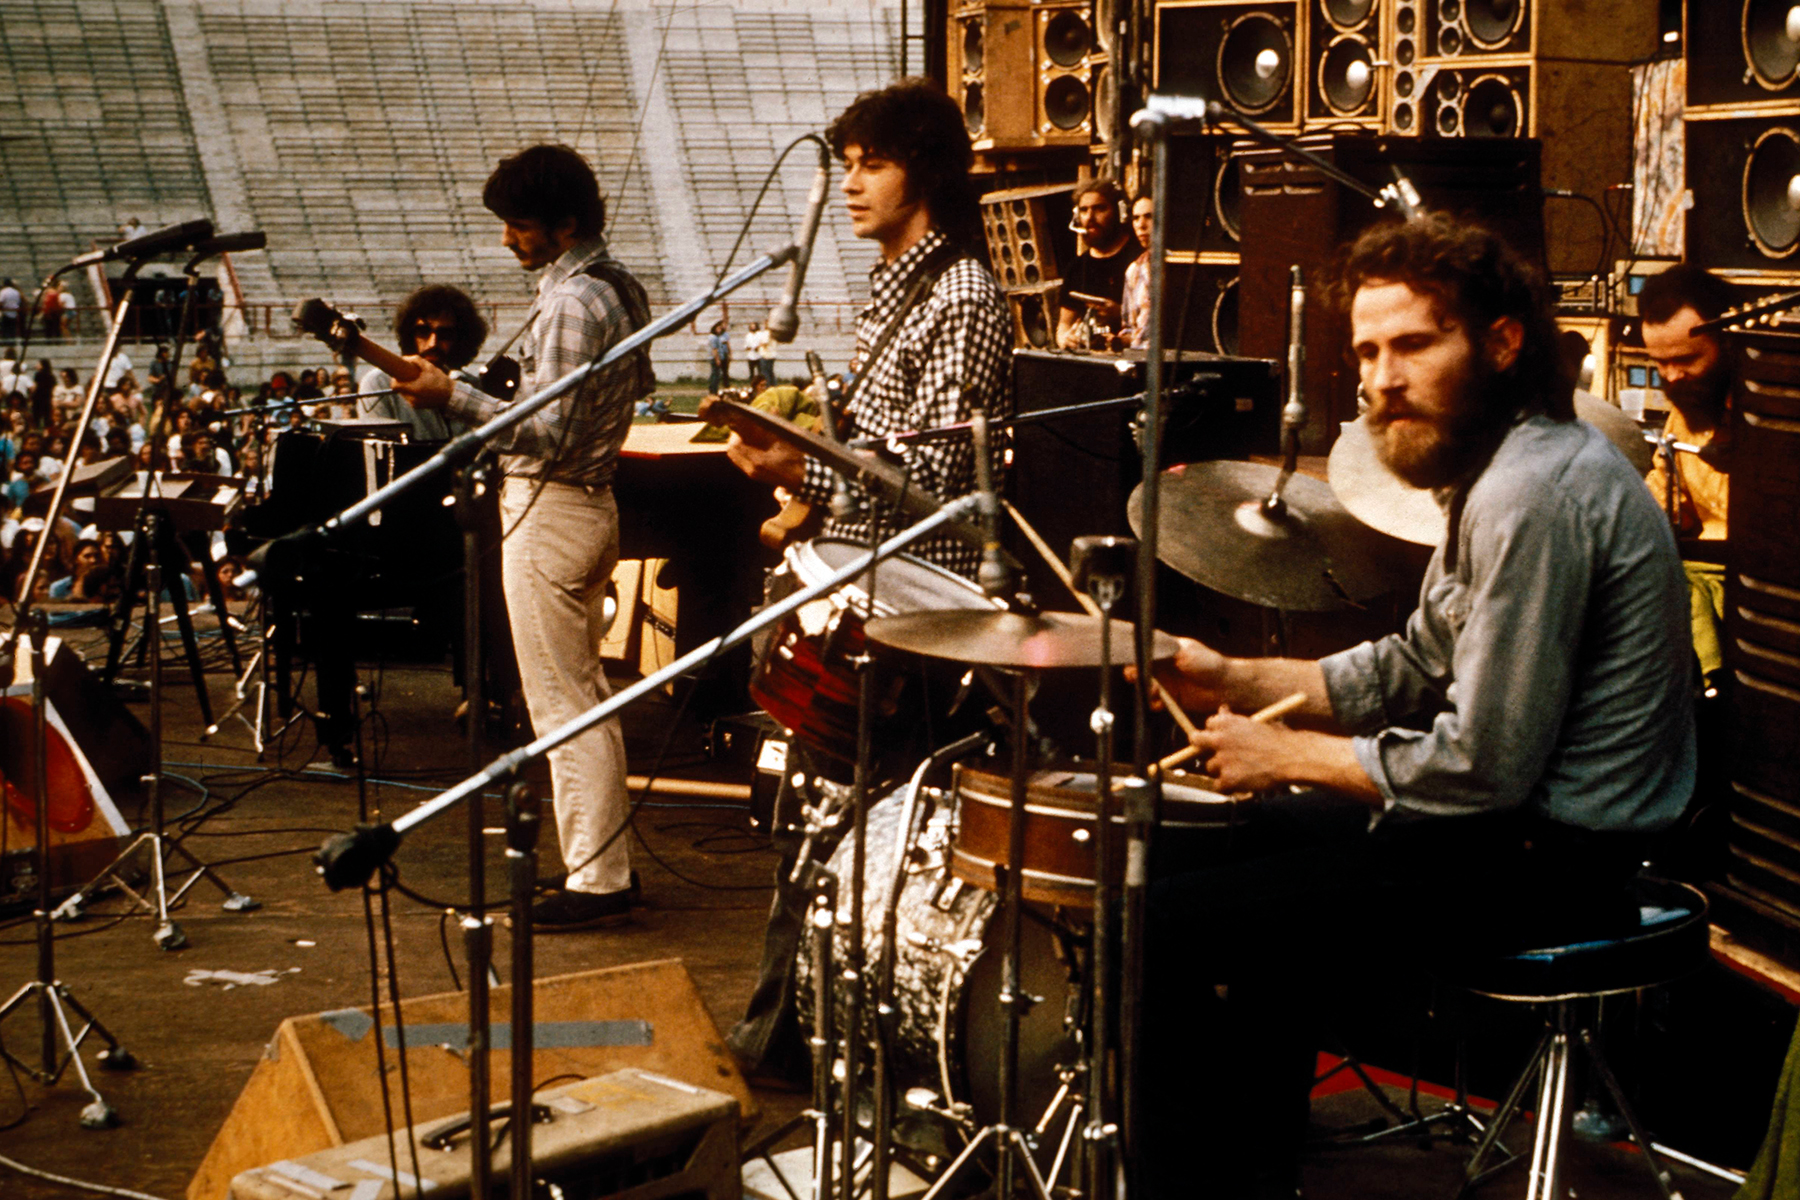 UNSPECIFIED - JANUARY 01: Photo of Robbie ROBERTSON and Rick DANKO and Levon HELM and BAND and Richard MANUEL and Garth HUDSON; L-R: Richard Manuel, Rick Danko, Robbie Robertson, Levon Helm, Garth Hudson (back) - performing live onstage in stadium c.1974 (Photo by RB/Redferns)